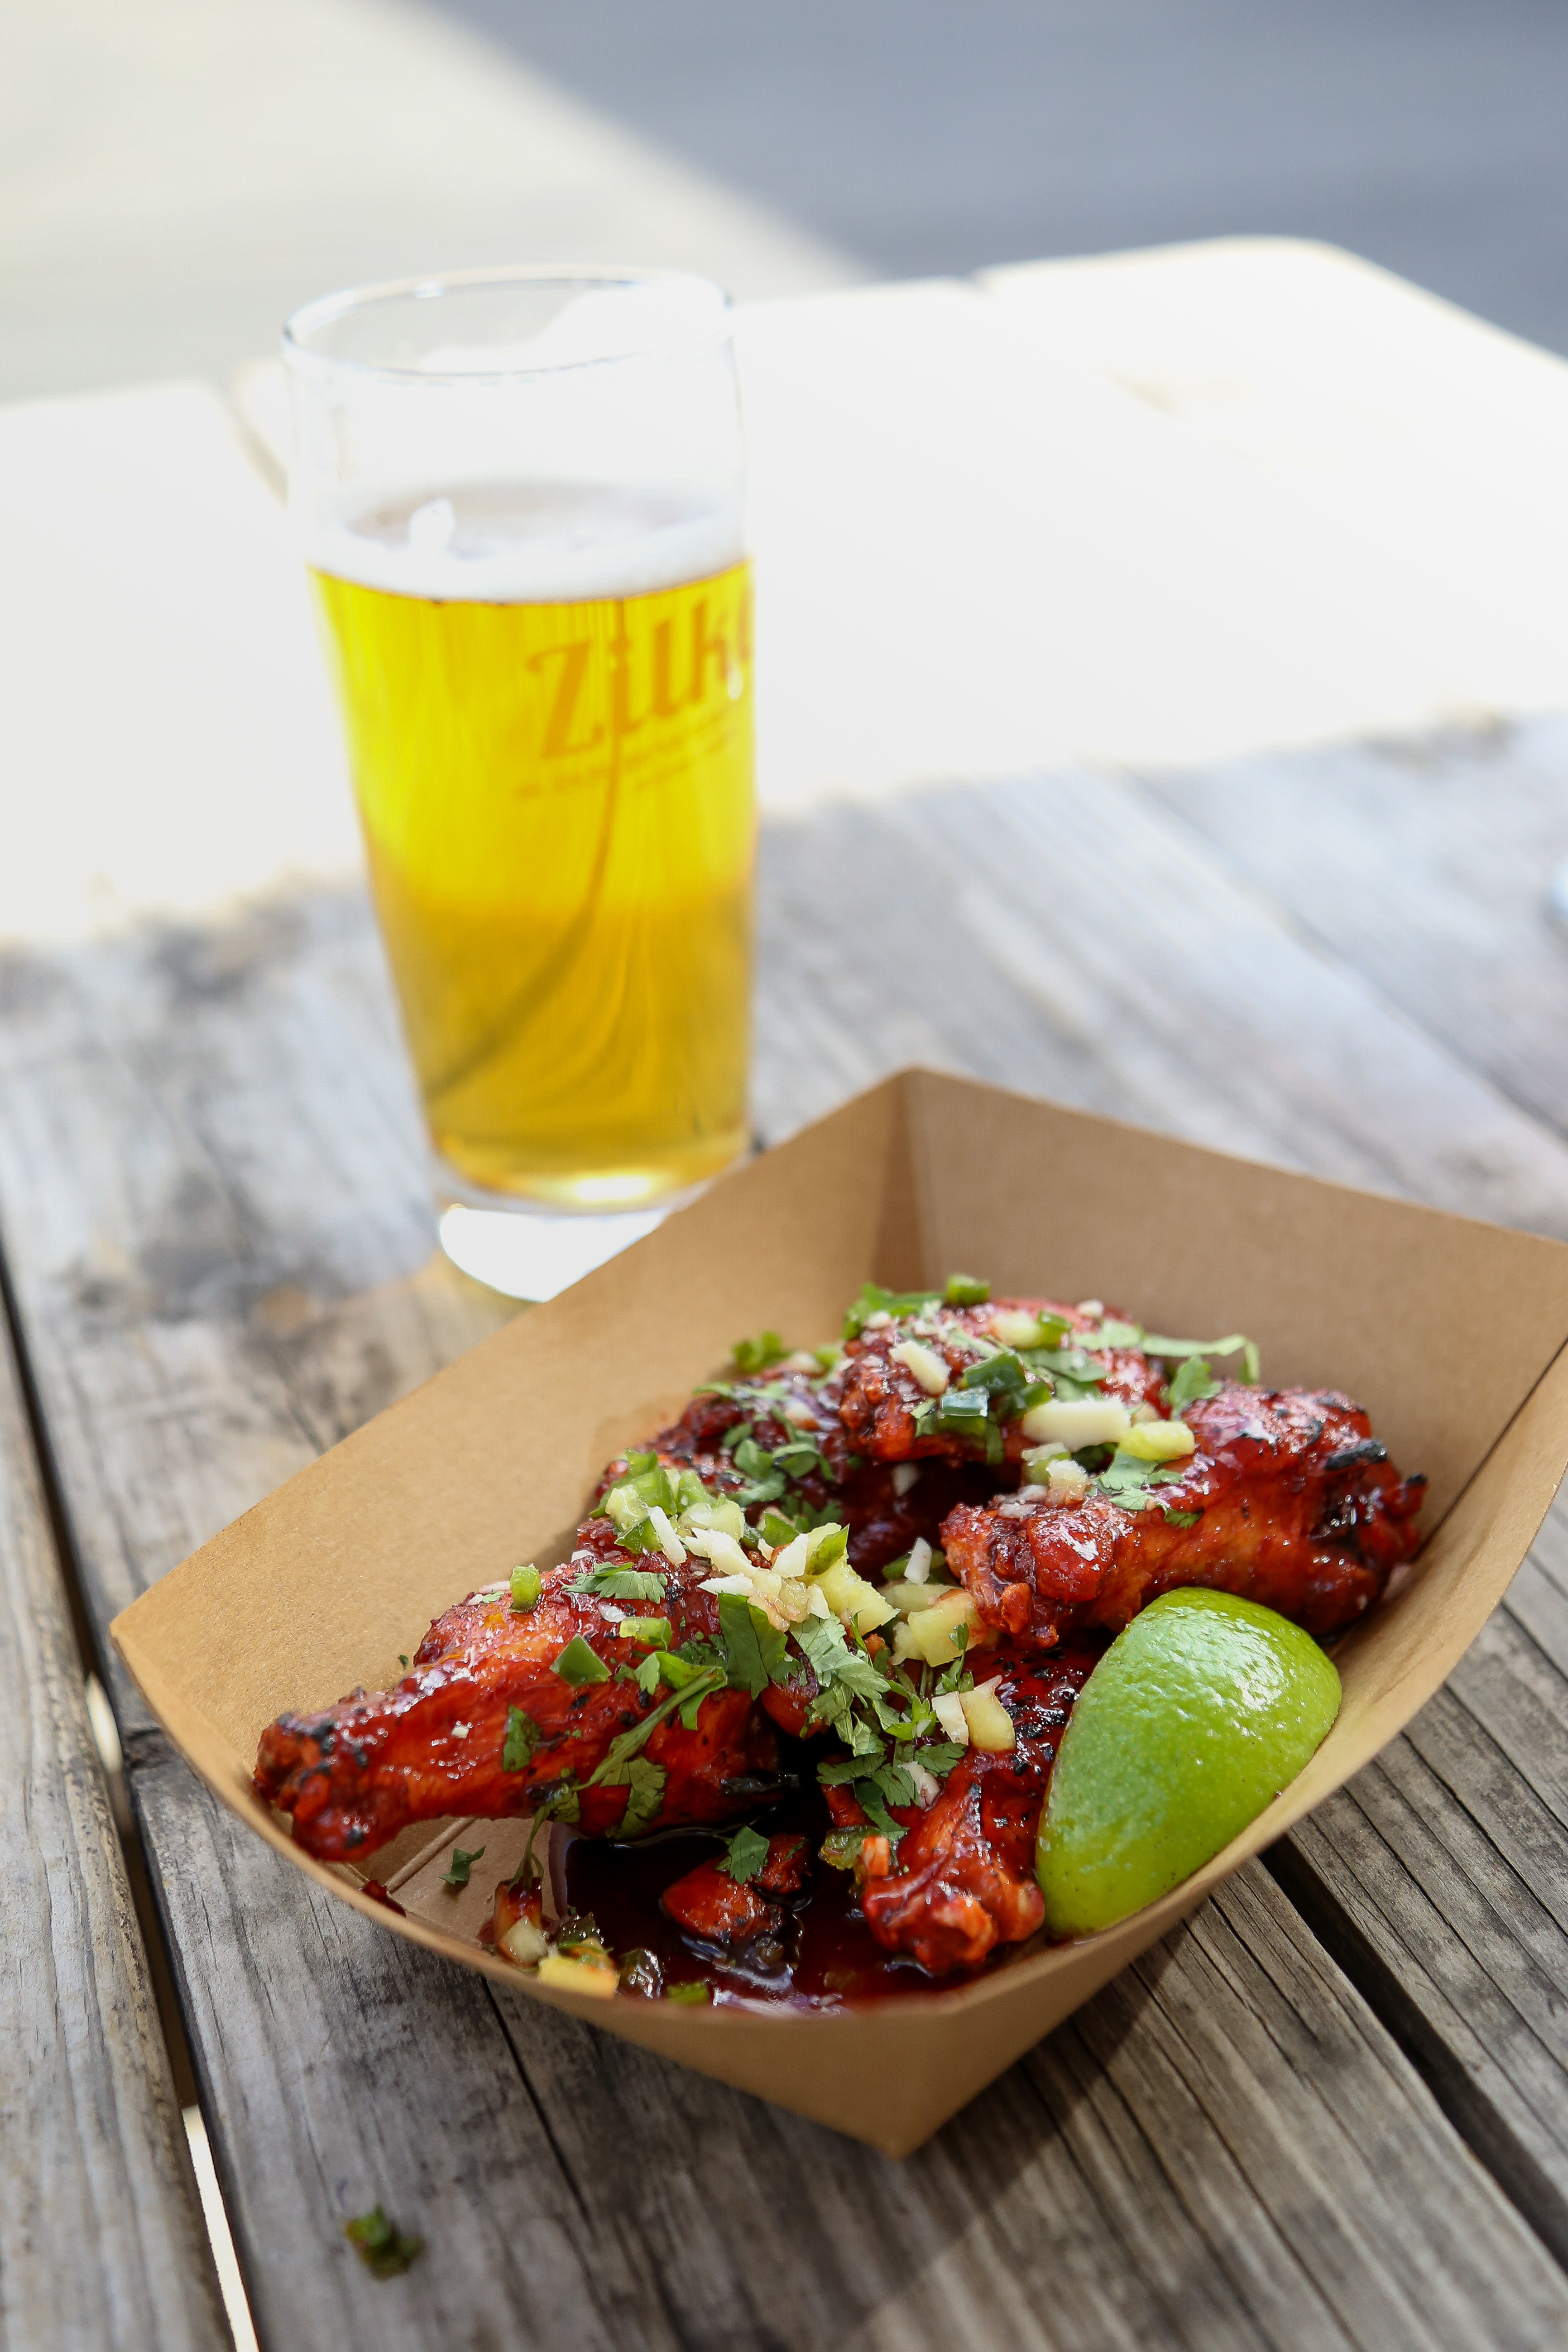 The CBD chicken wings from Spicy Boys